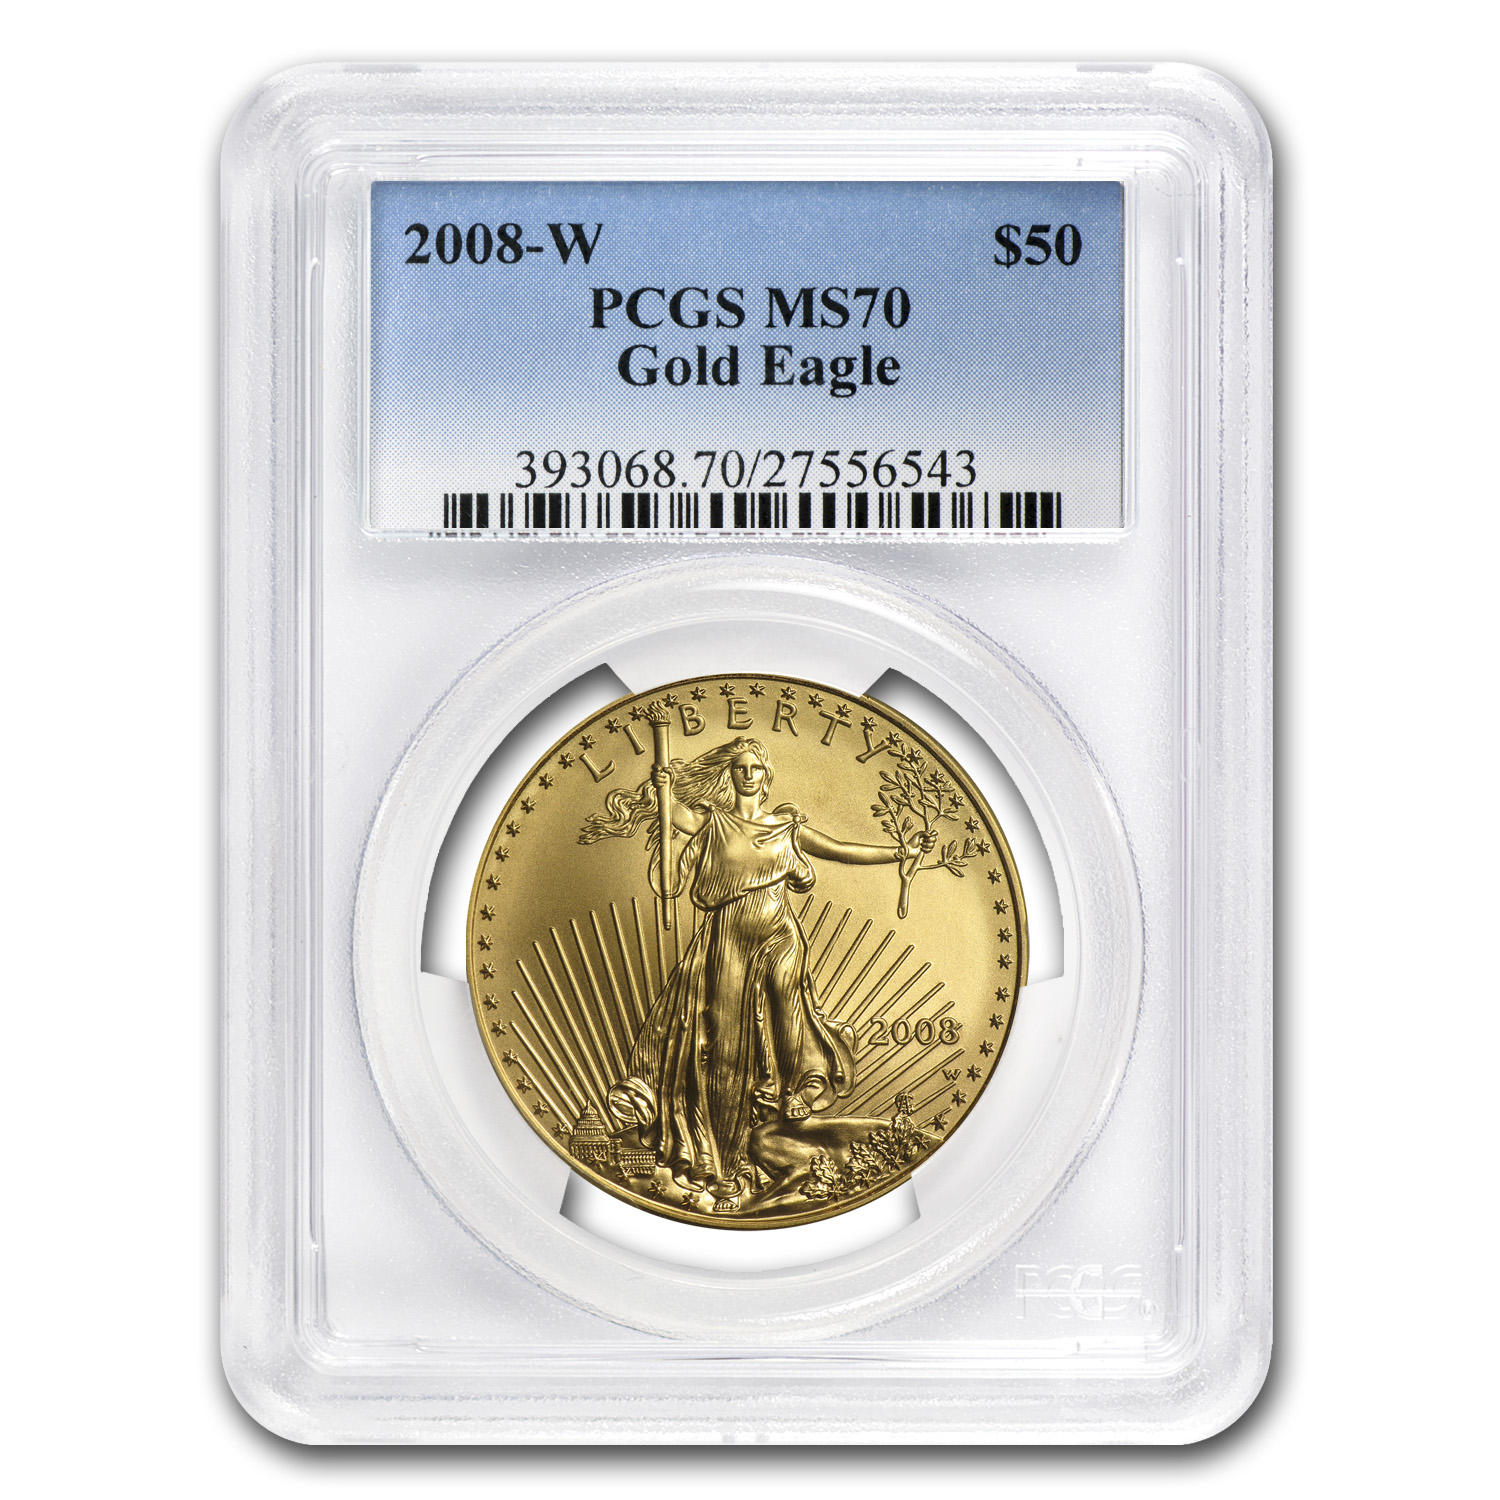 2008-W 1 oz Burnished Gold American Eagle MS-70 PCGS